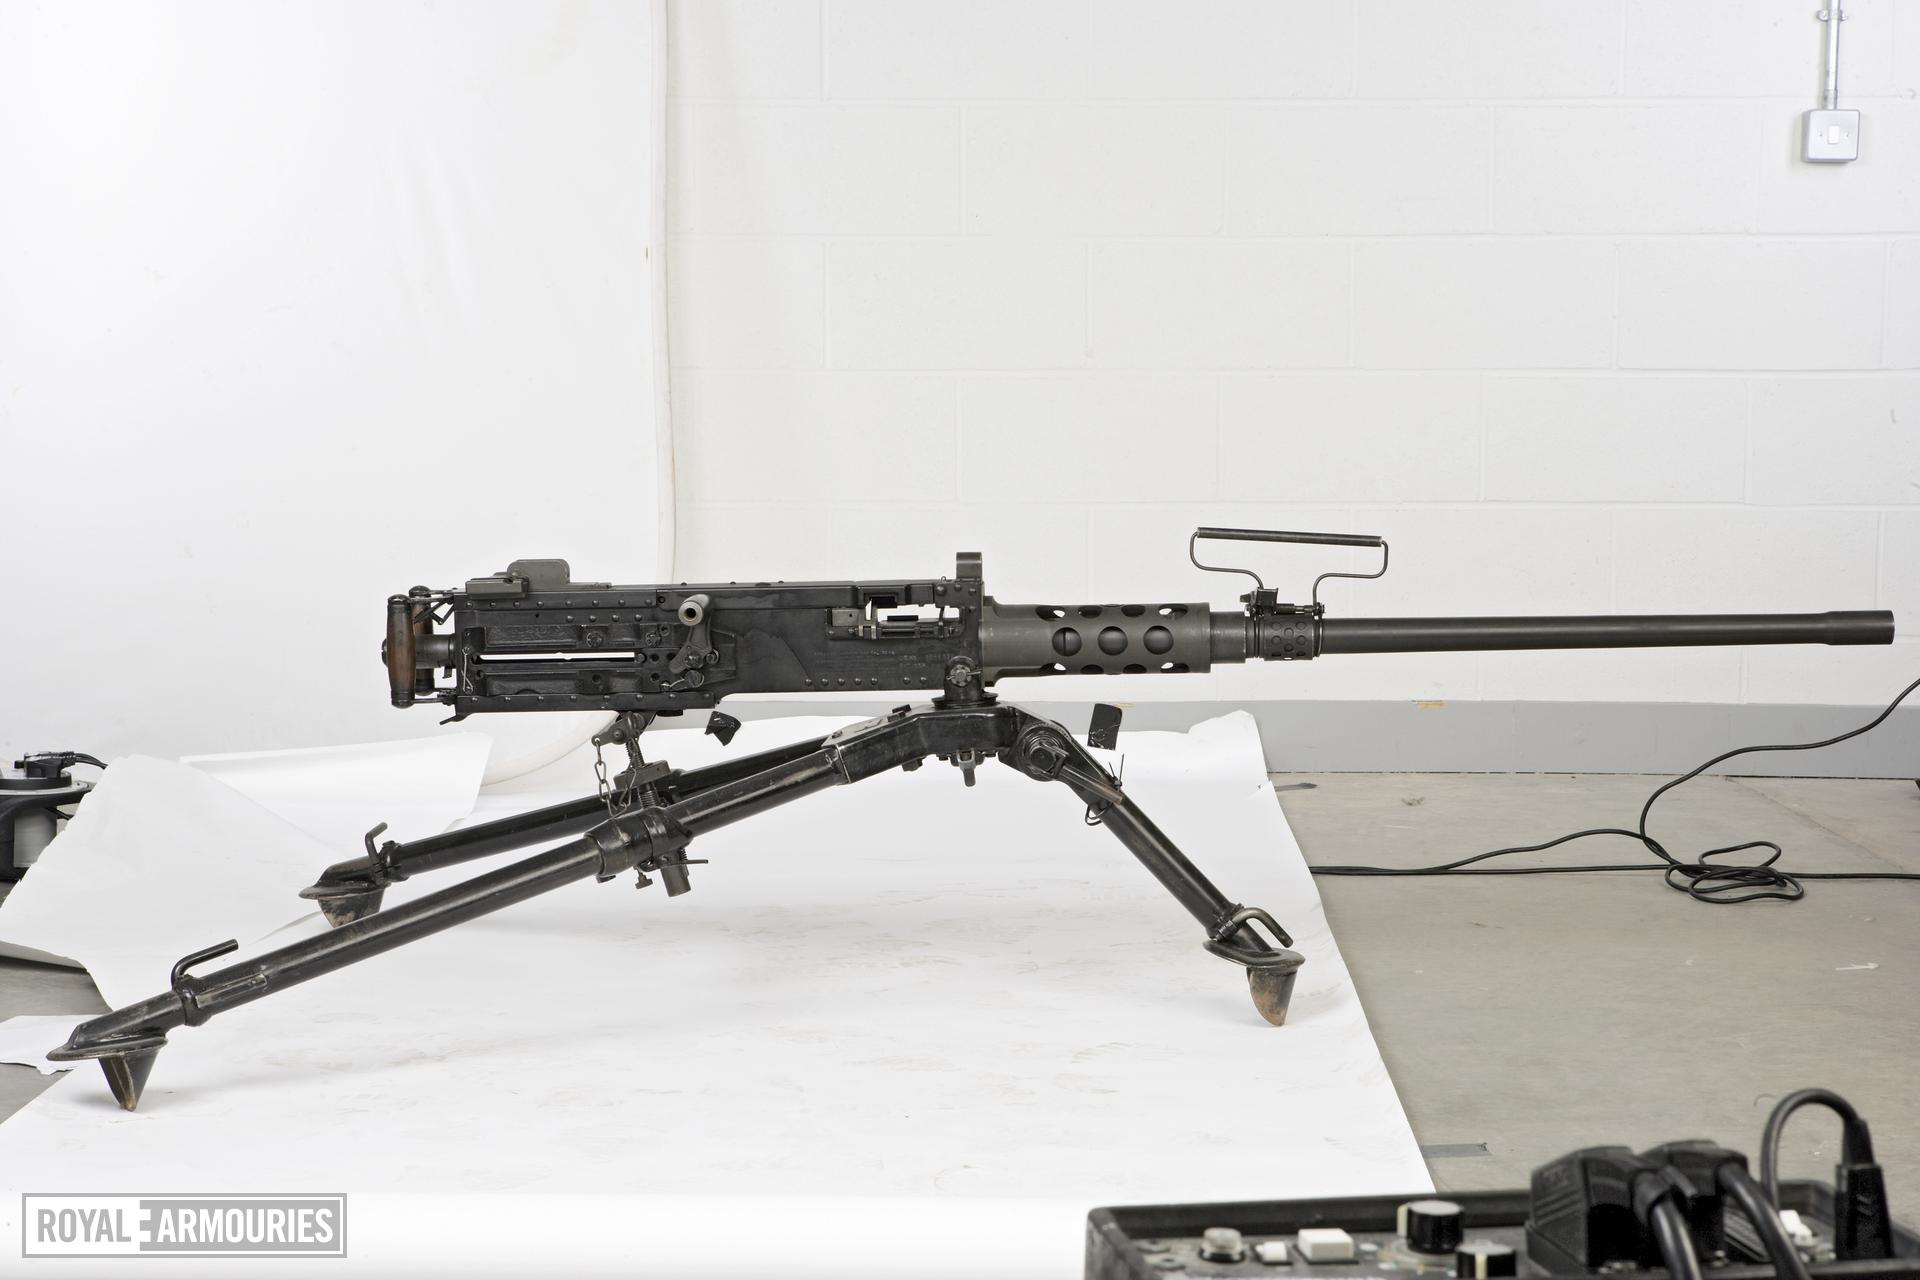 Centrefire automatic machine gun - Browning M2 HB